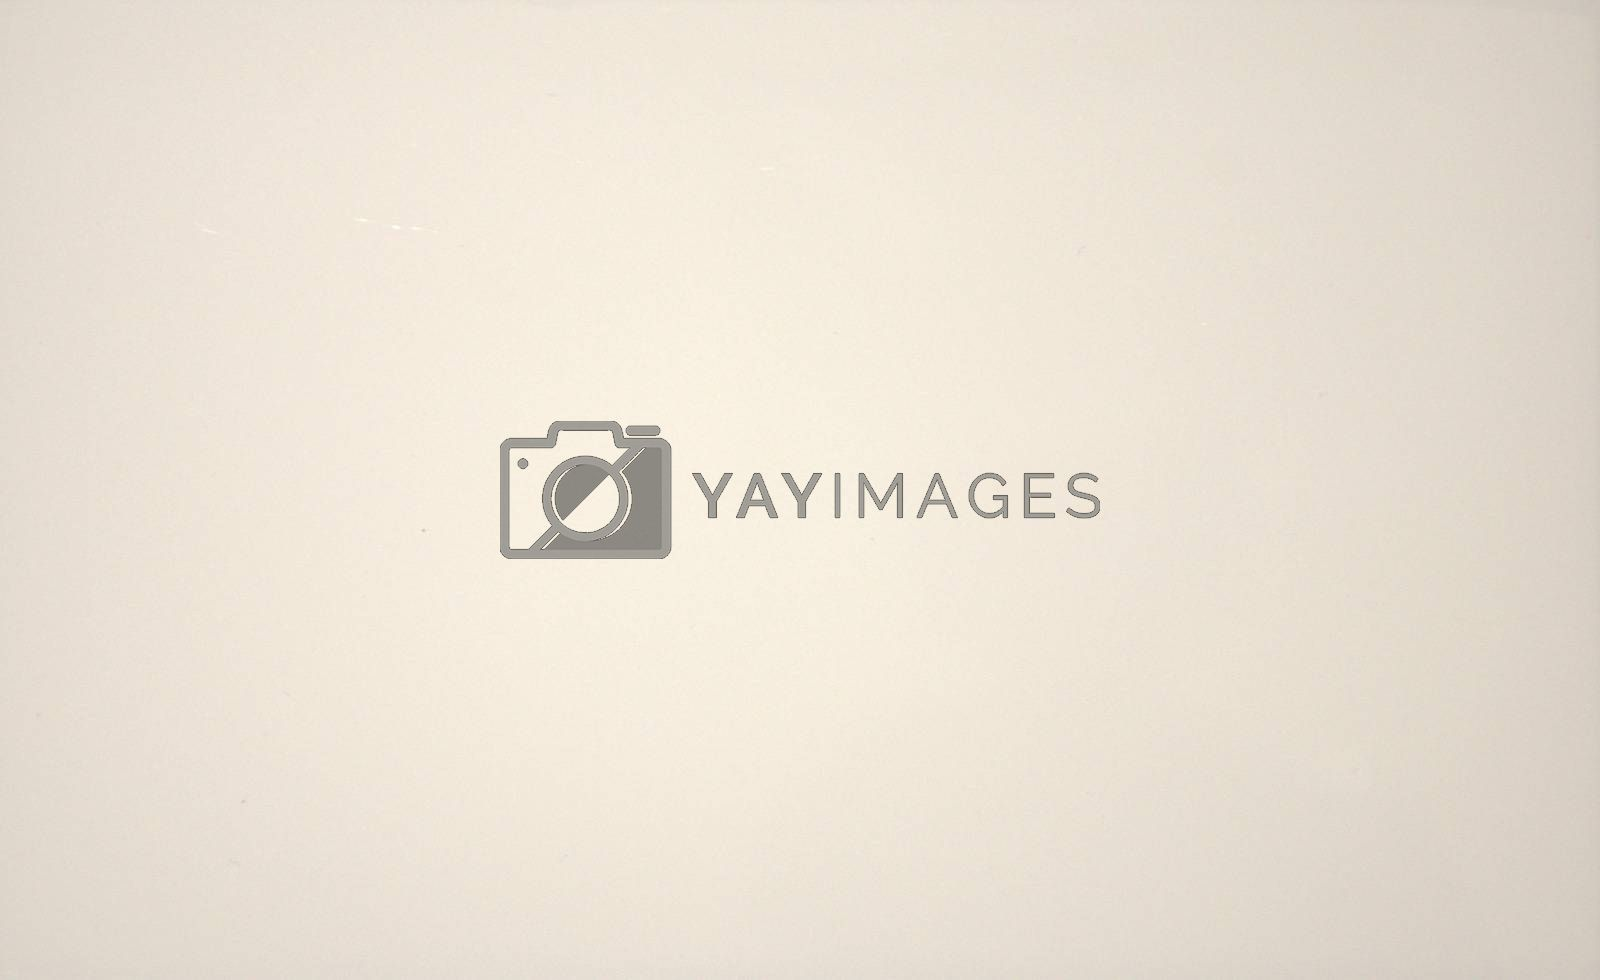 White lurred solid color background. Texture, gradient vignetting